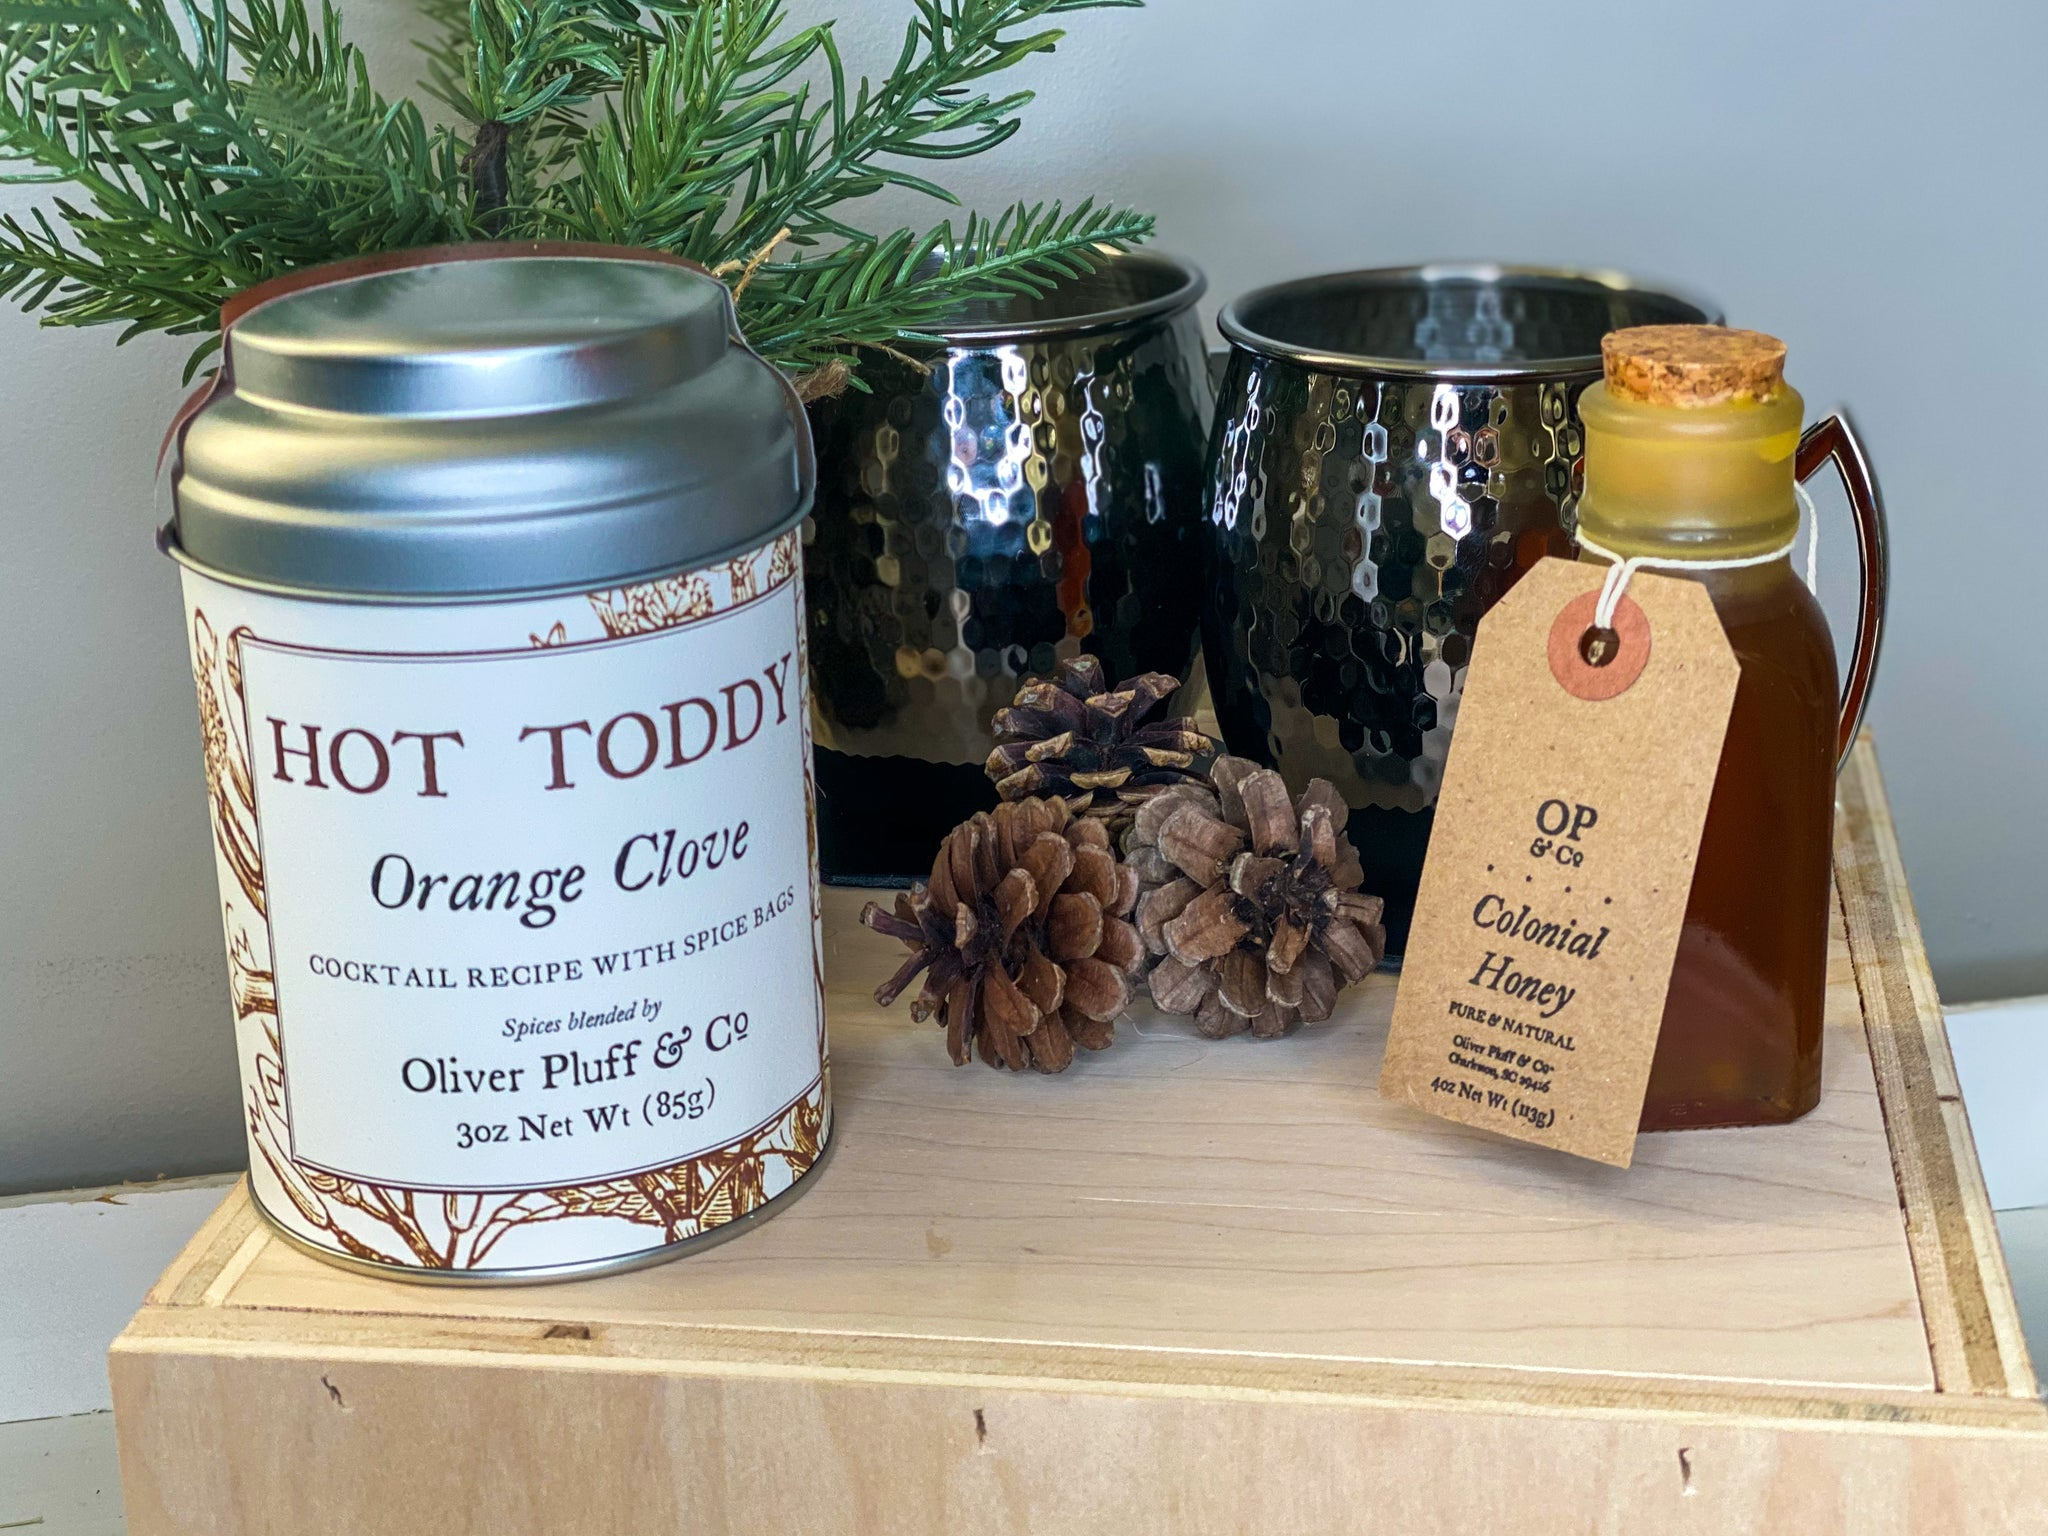 The Hot Toddy Box